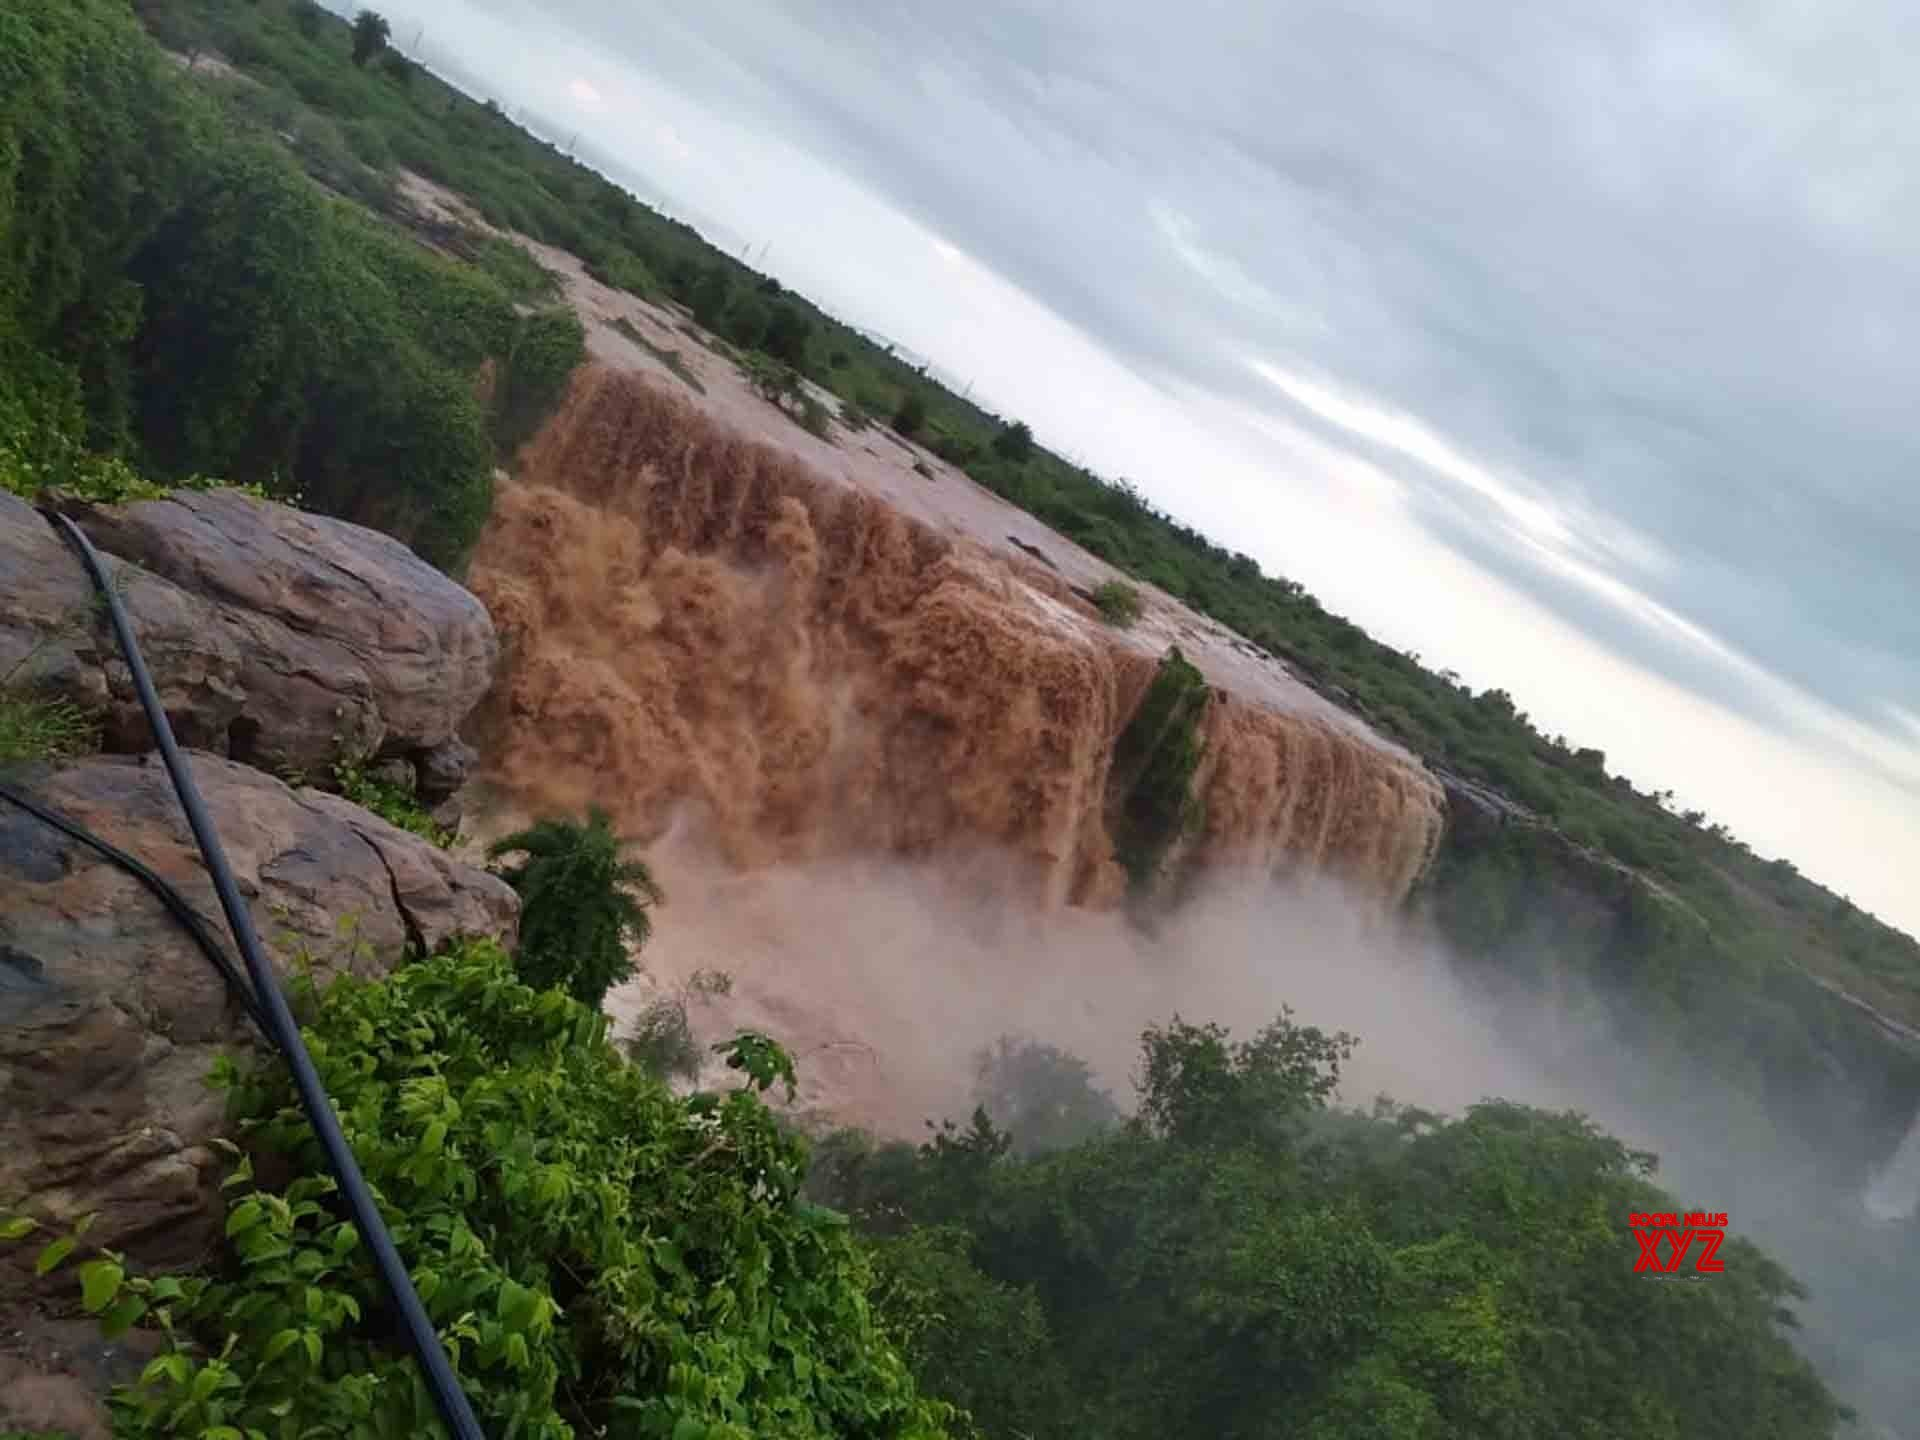 Guntur: Ethipothala Waterfalls post monsoon showers #Gallery